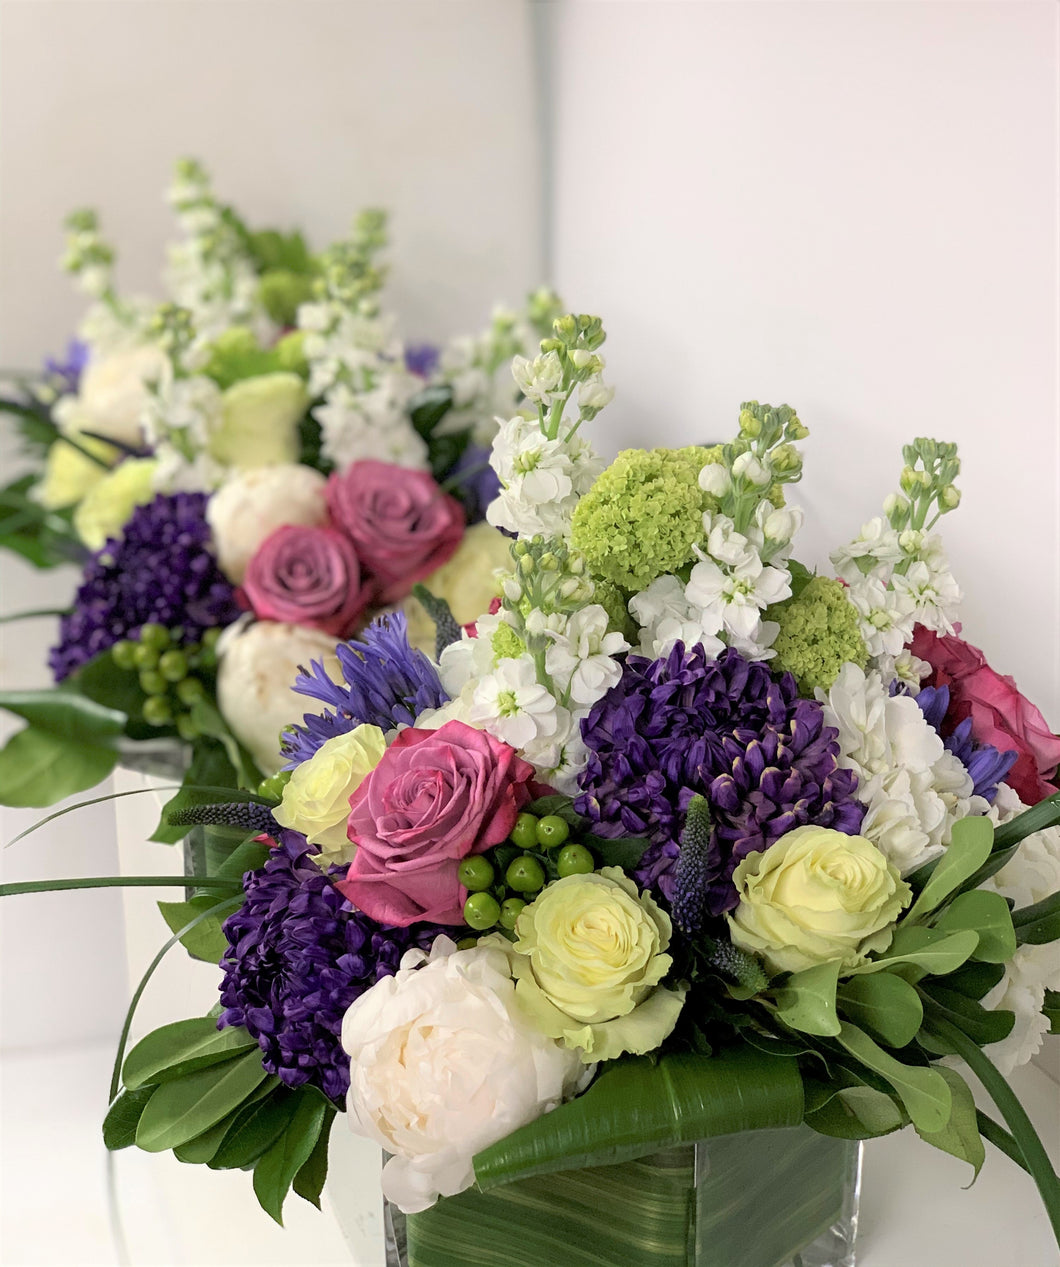 E1 - Shades of Purples and Whites Table Centerpieces - Series Design - Flowerplustoronto